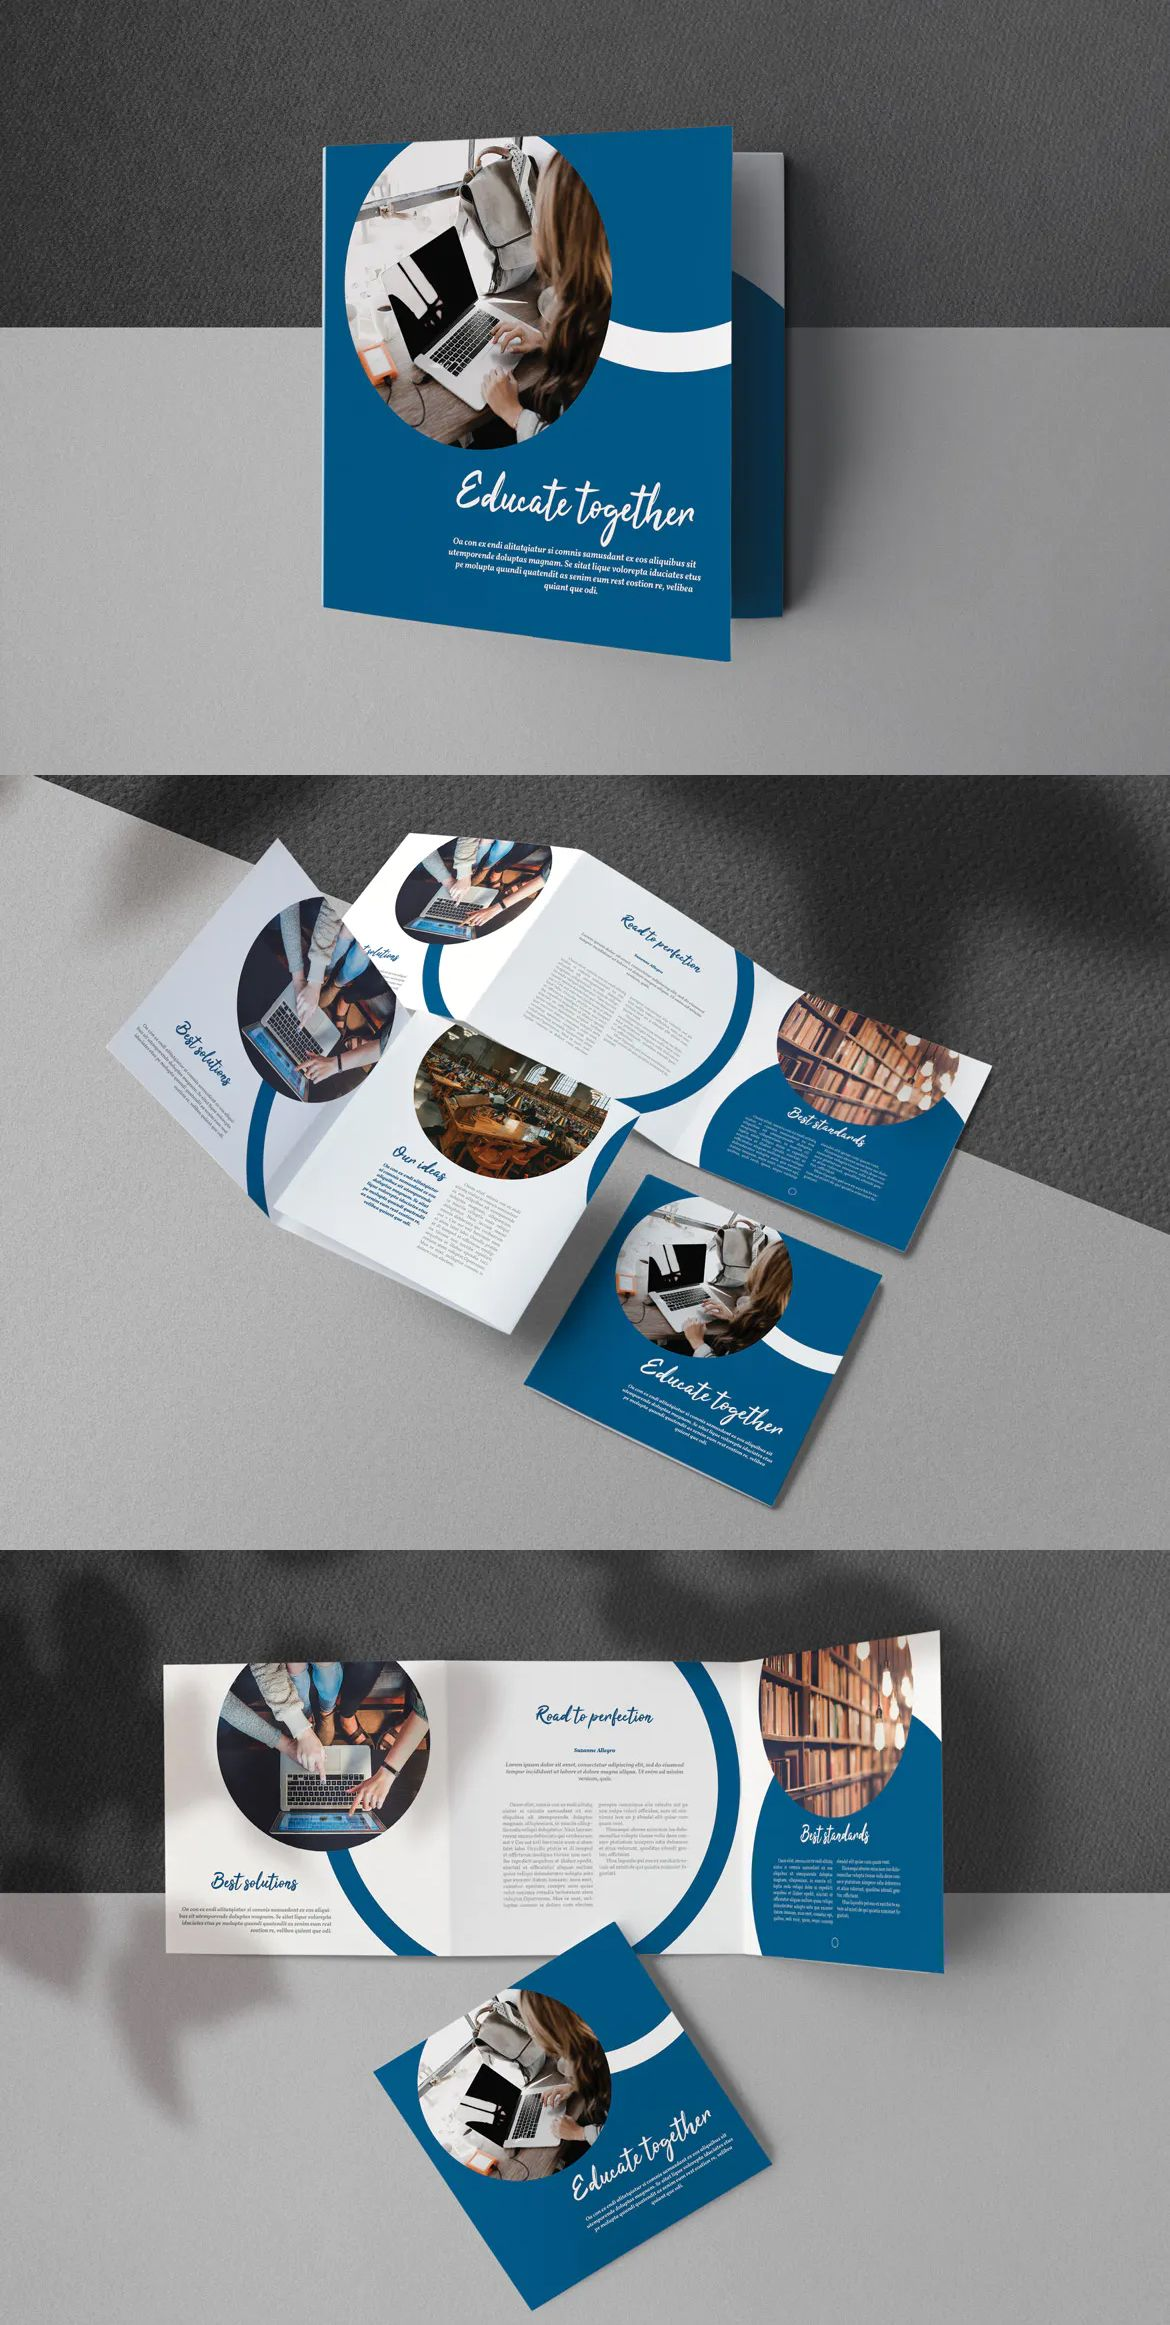 Education Square Trifold Brochure Template Brochure Design Template Business Card Design Trifold Brochure Template